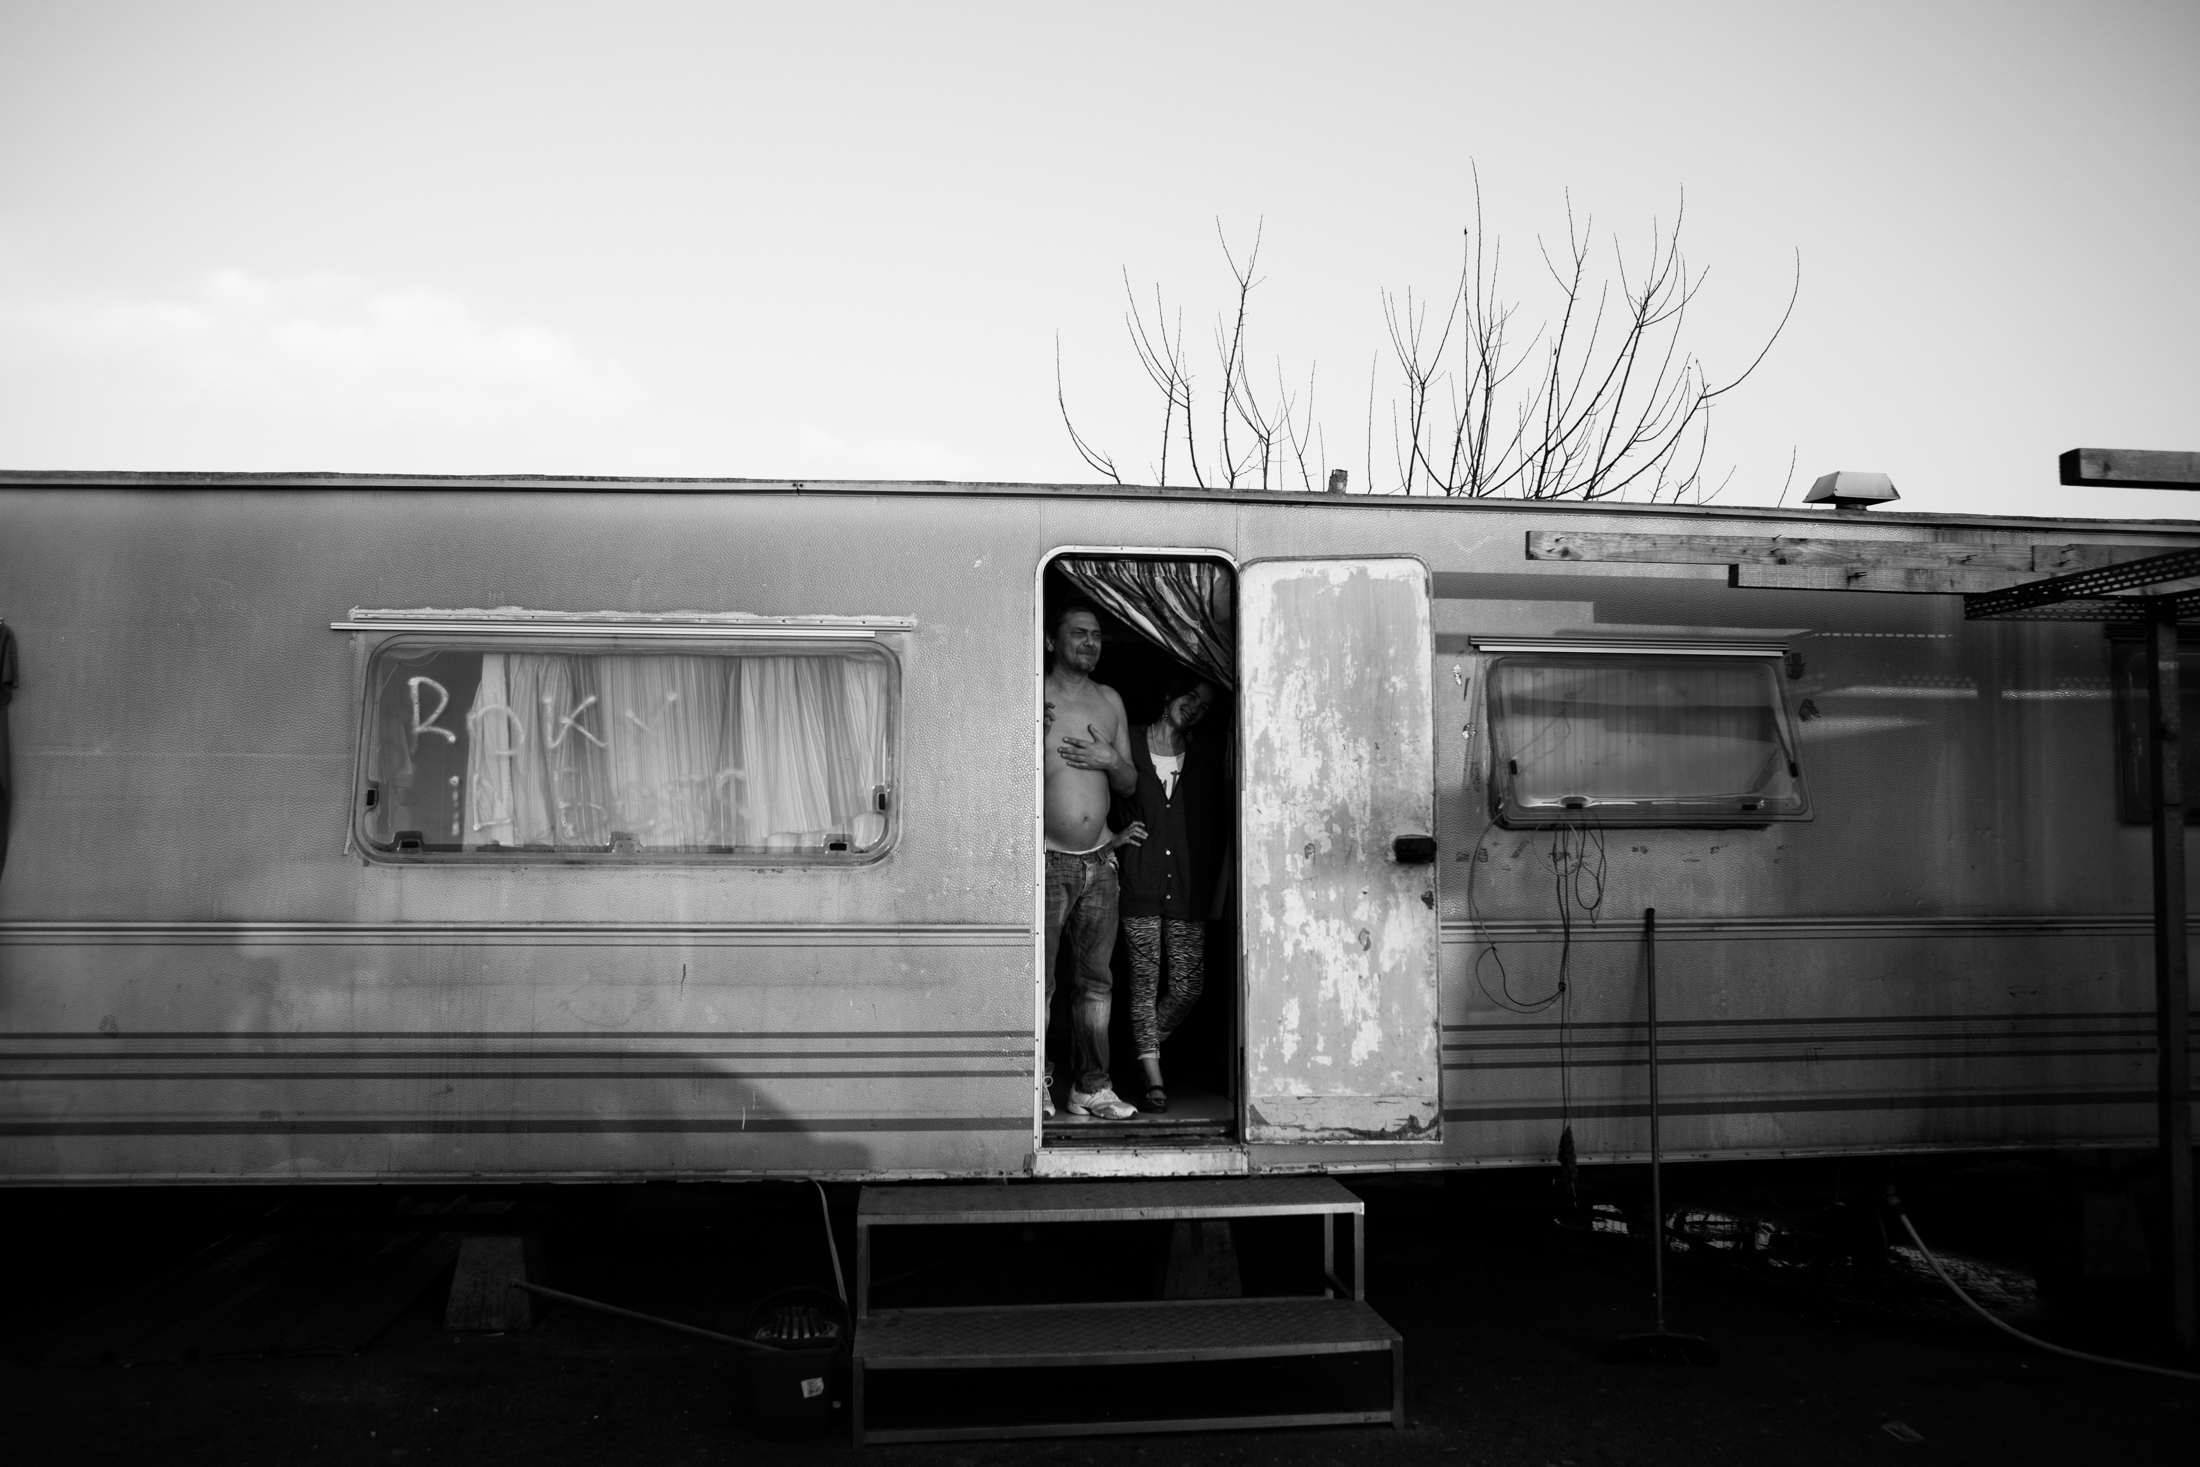 March 2017, nomad camp of Castelnuovo Rangone, Emilia Romagna, Italy. Rocky and his wife greet friends from the threshold of their mobile home.